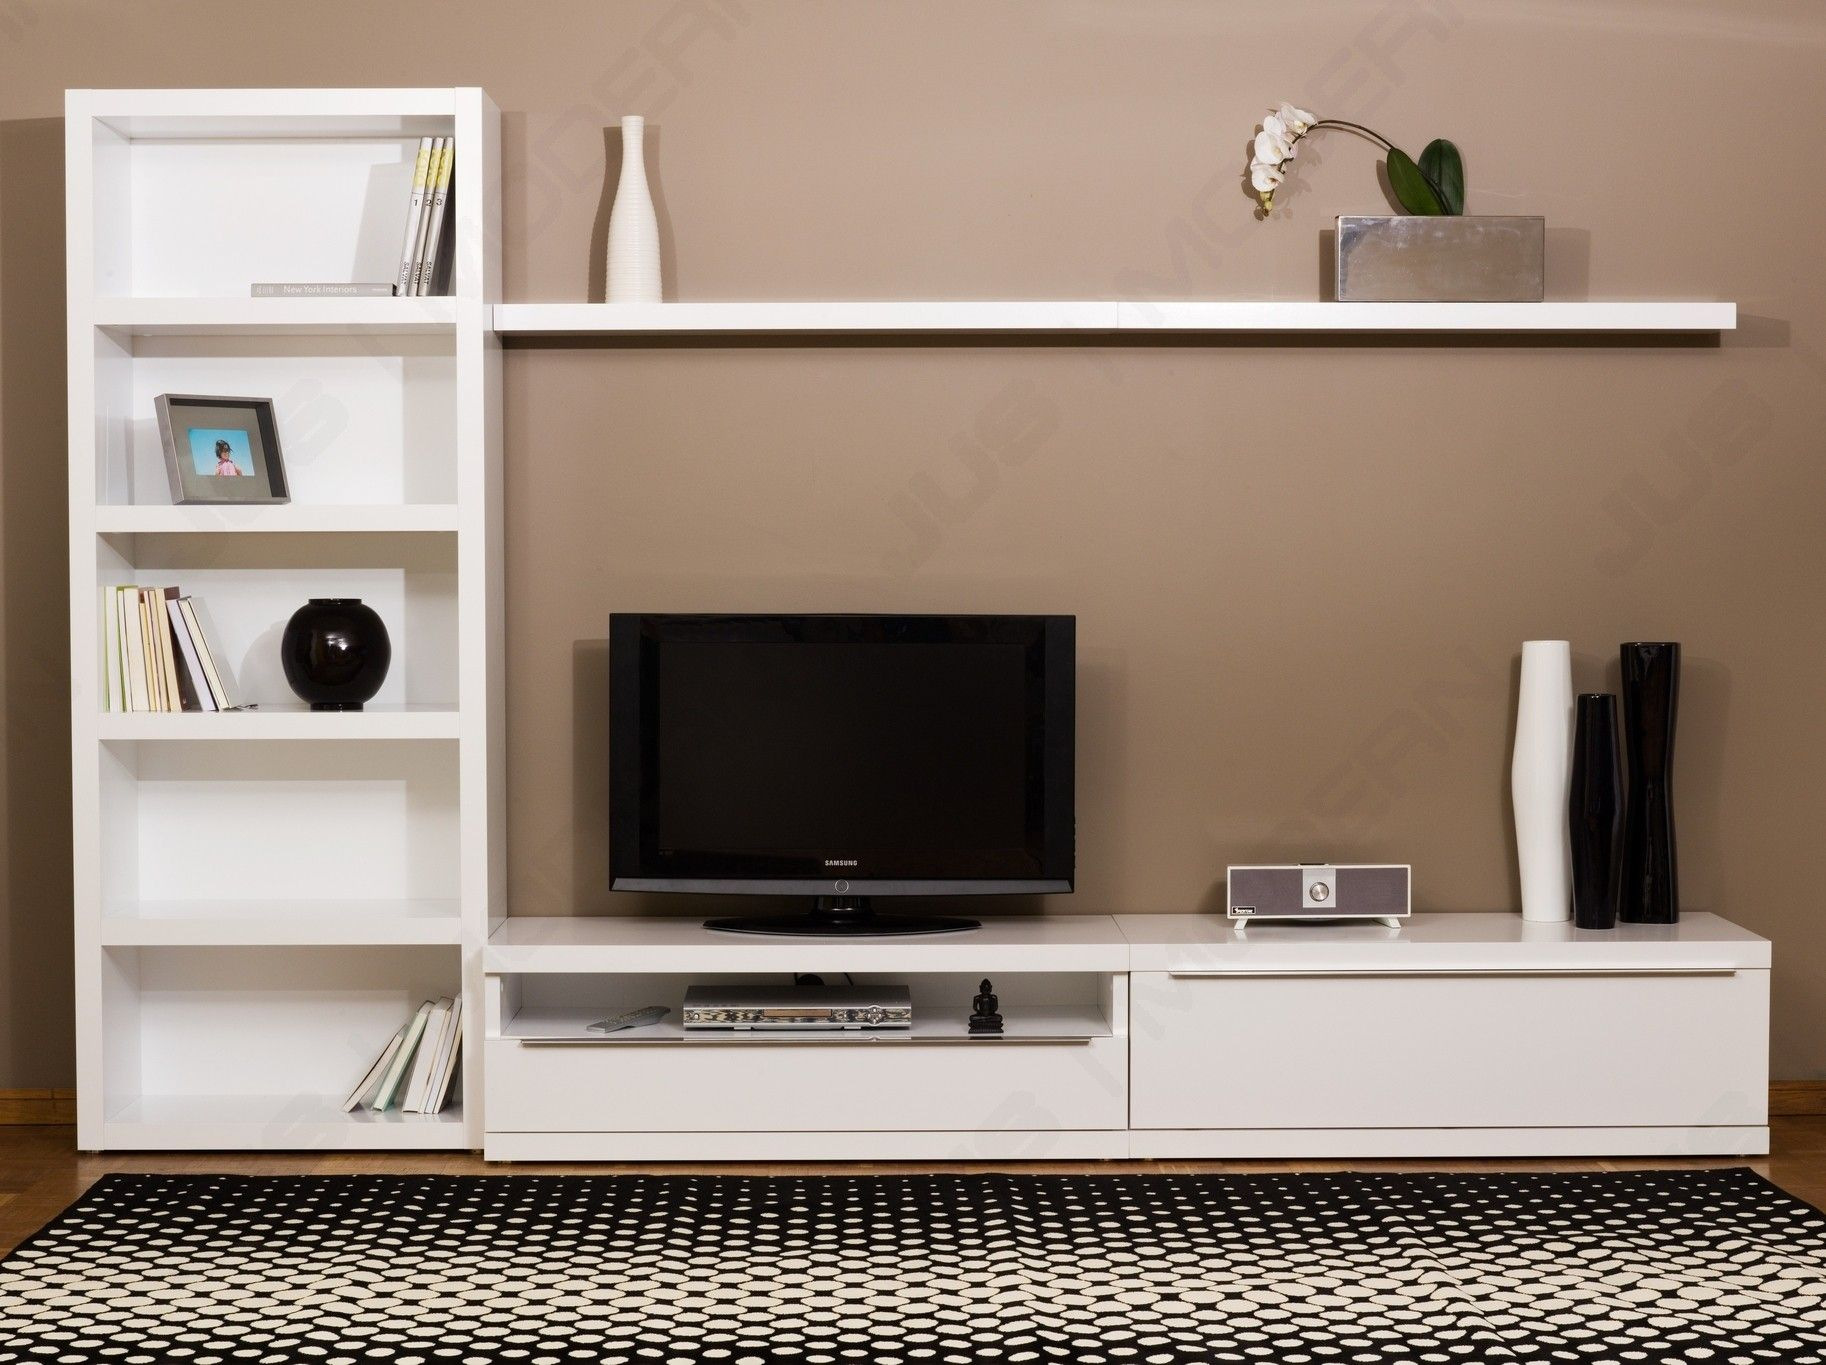 Wall Mounted Tv Stands Minimalist Stand An Trends Including Shelving Units Images Elegant Kitchen Cabinet Id Living Room Tv Bookcase Wall Contemporary Bookcase